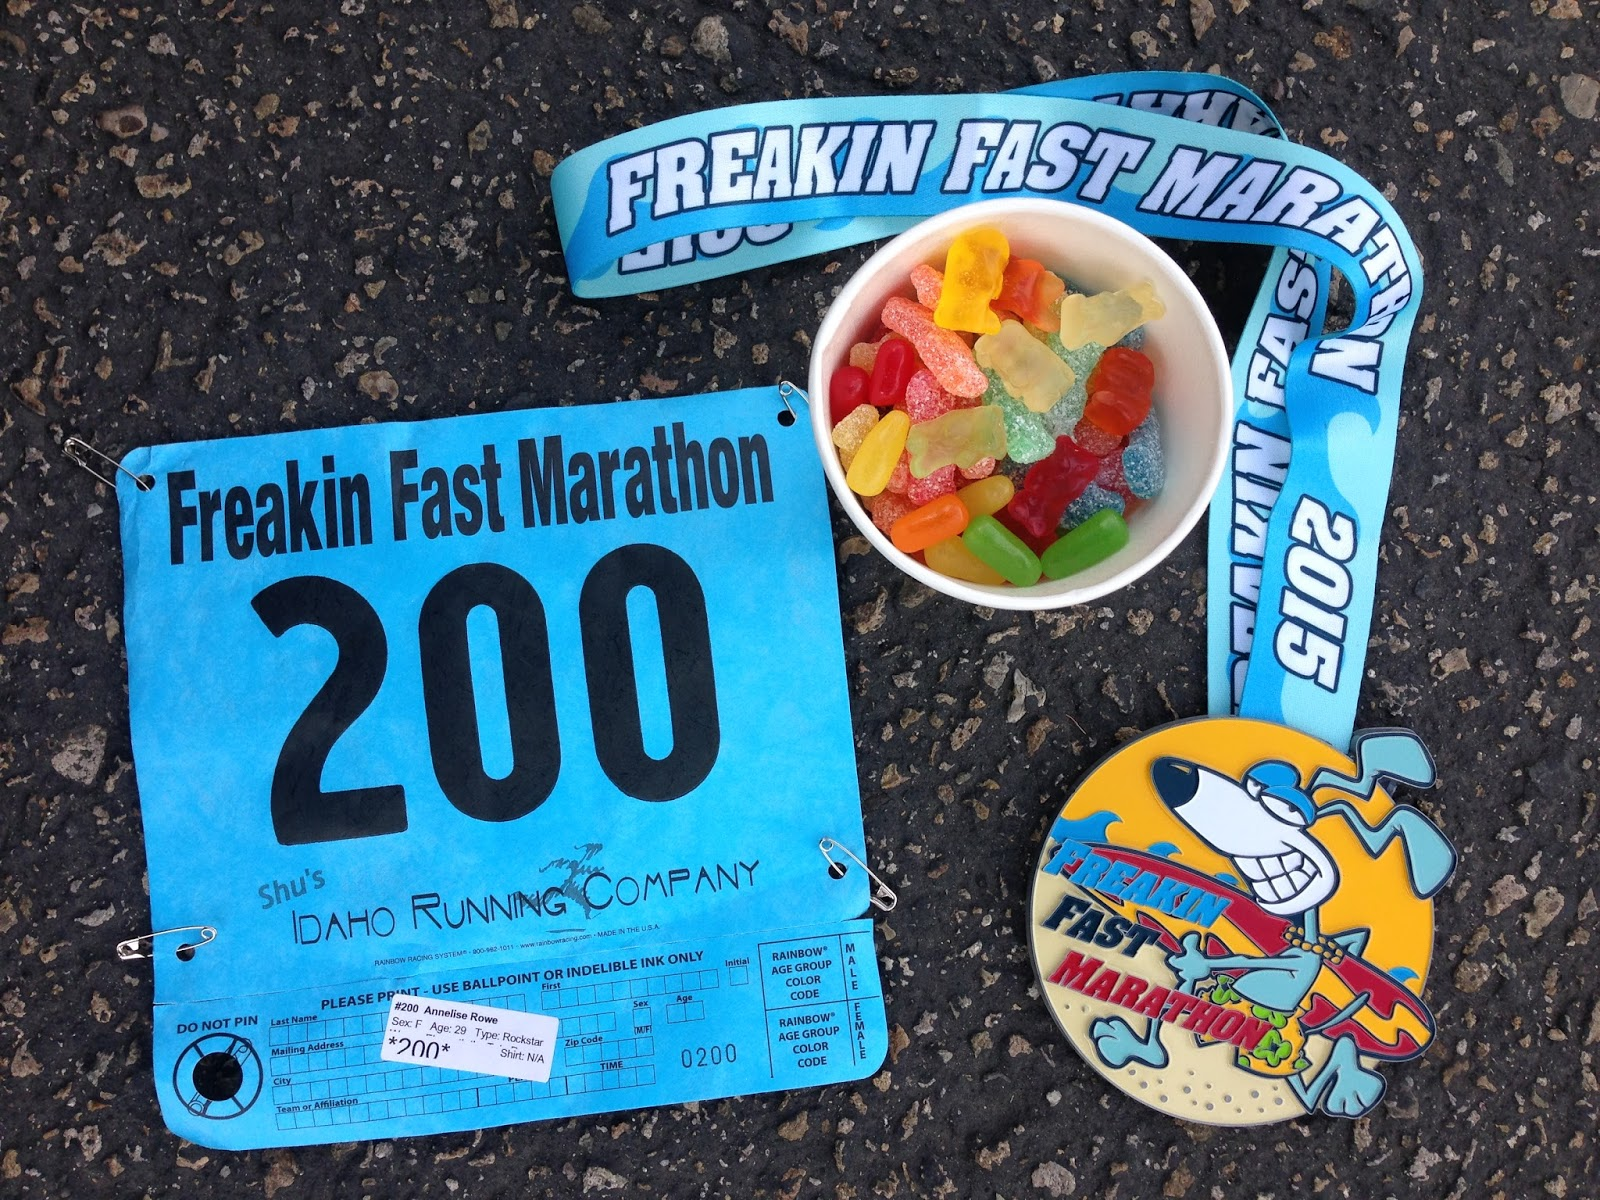 Freakin Fast Marathon, Fastest Marathon in the World, Marathon in Boise, Downhill Marathon, Boise Runner